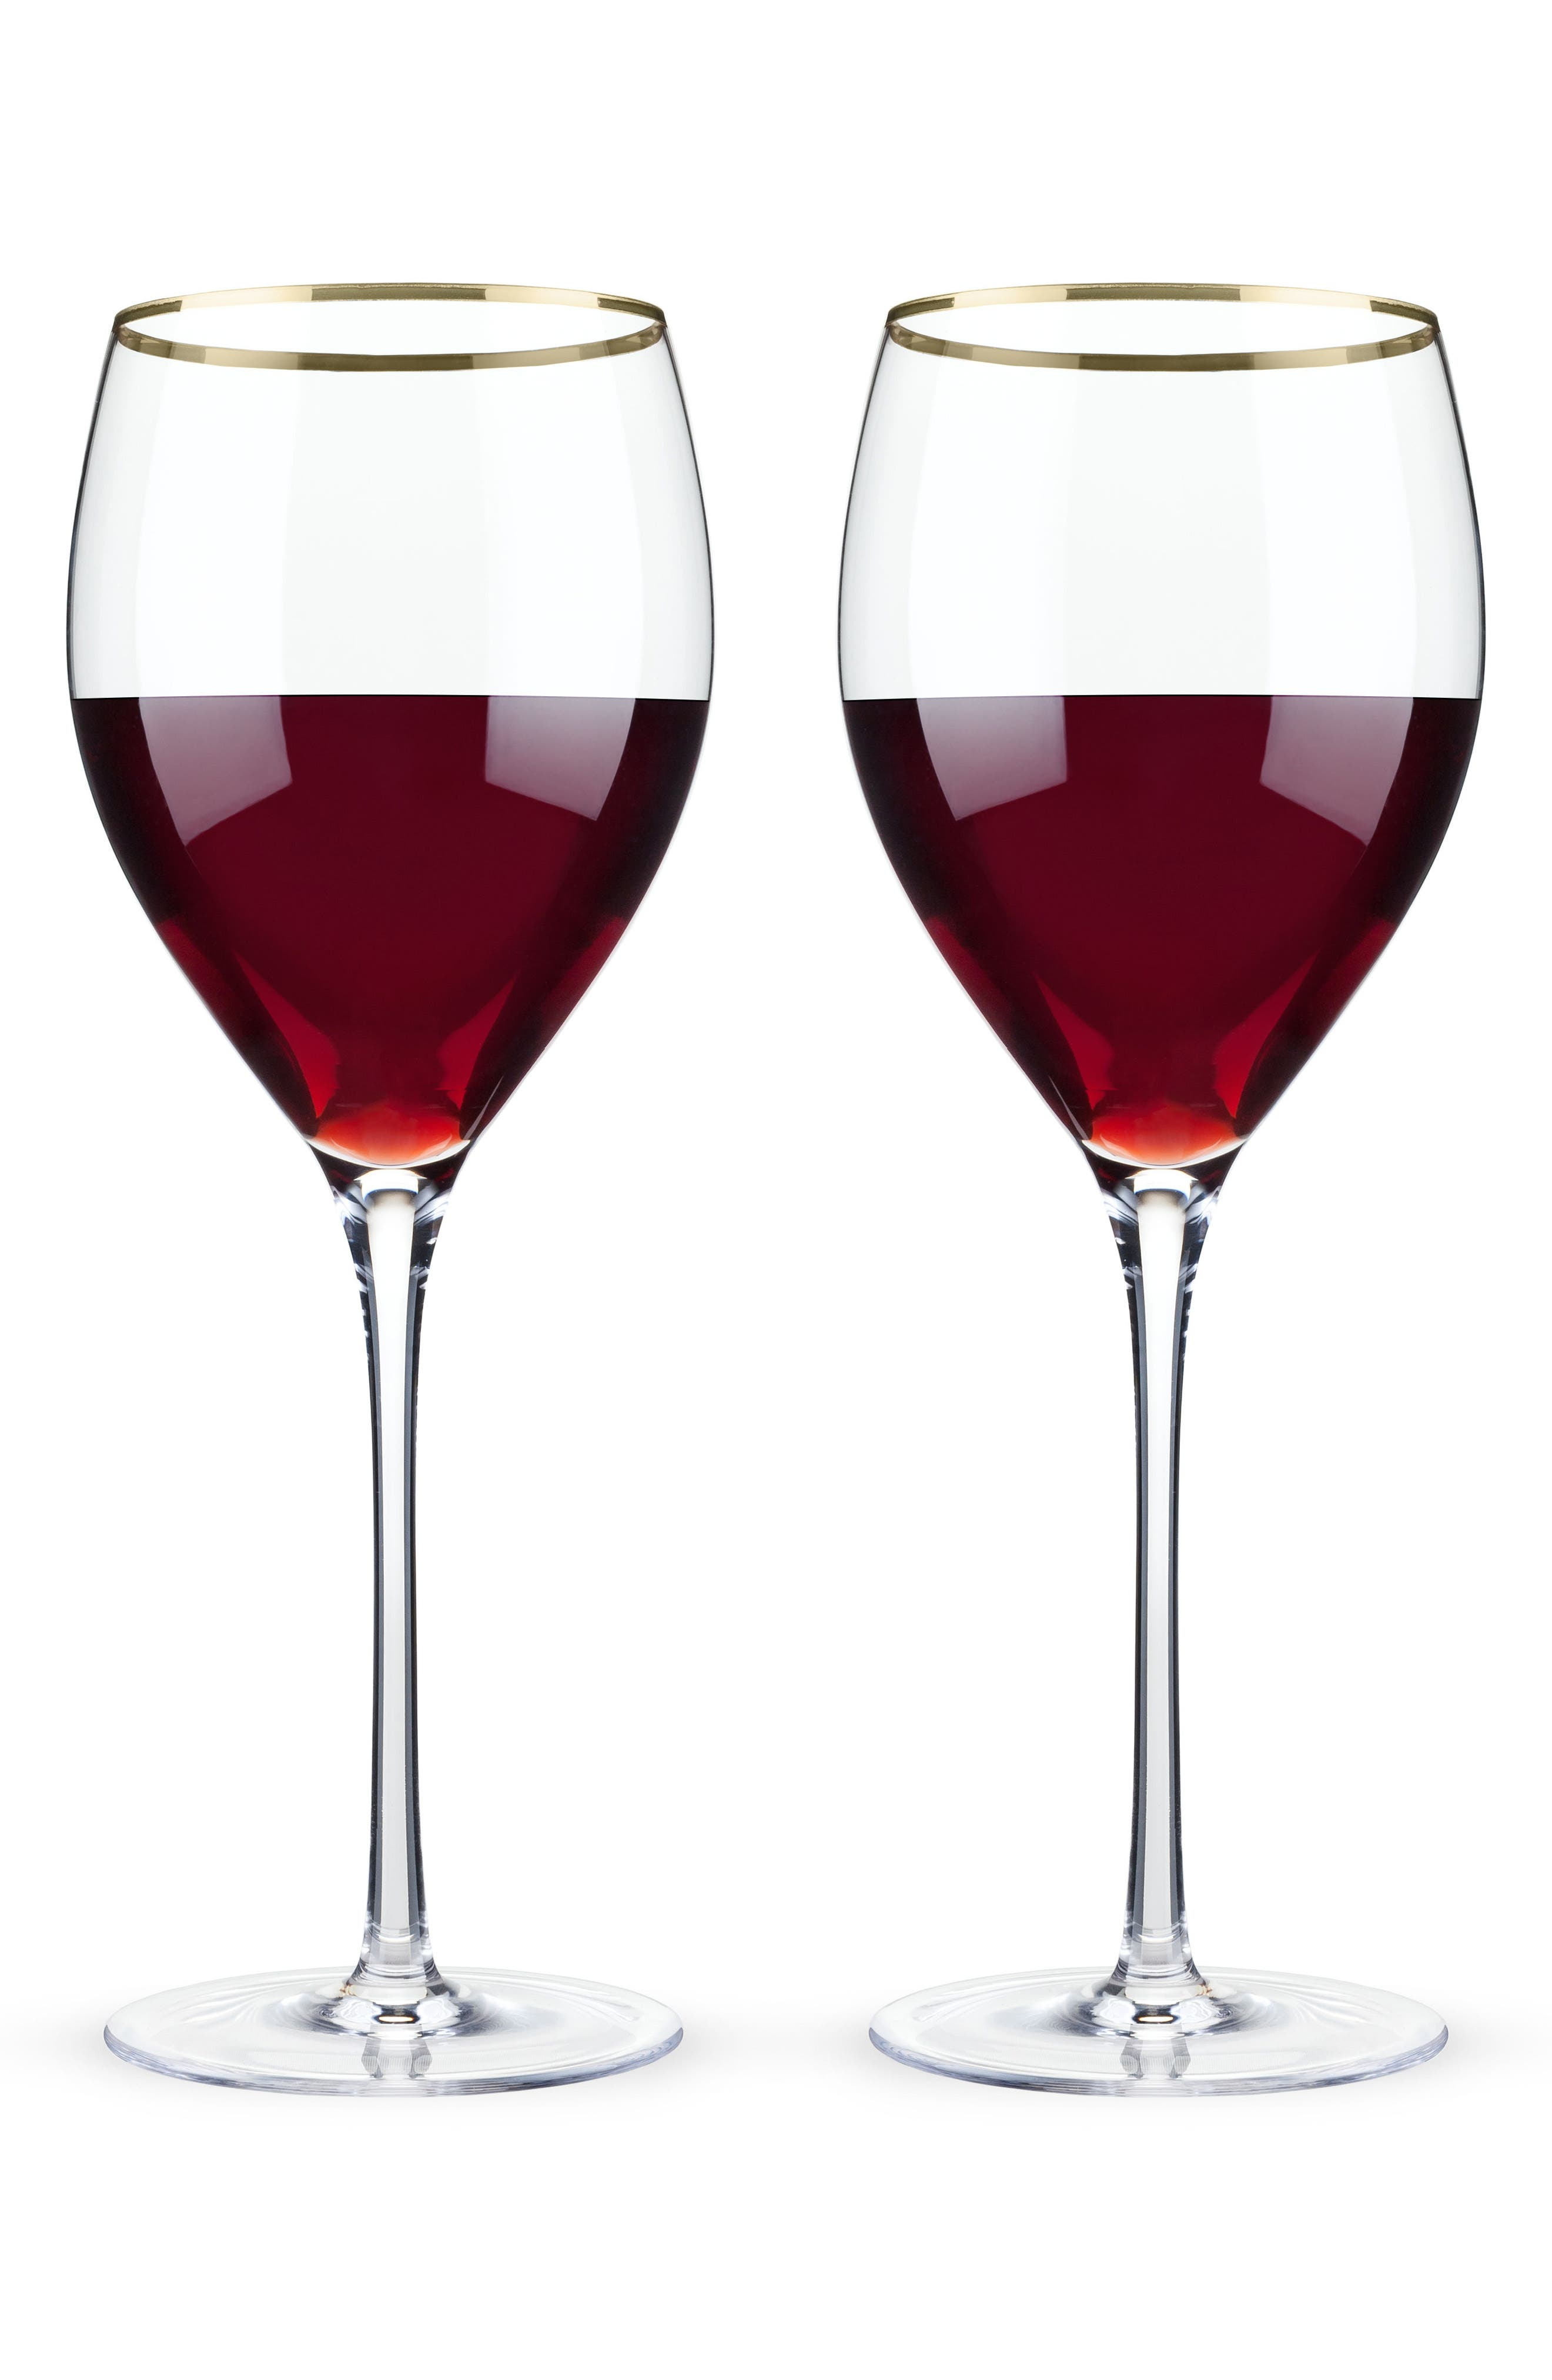 Belmont Set of 2 Gold Rim Wine Glasses,                             Main thumbnail 1, color,                             White